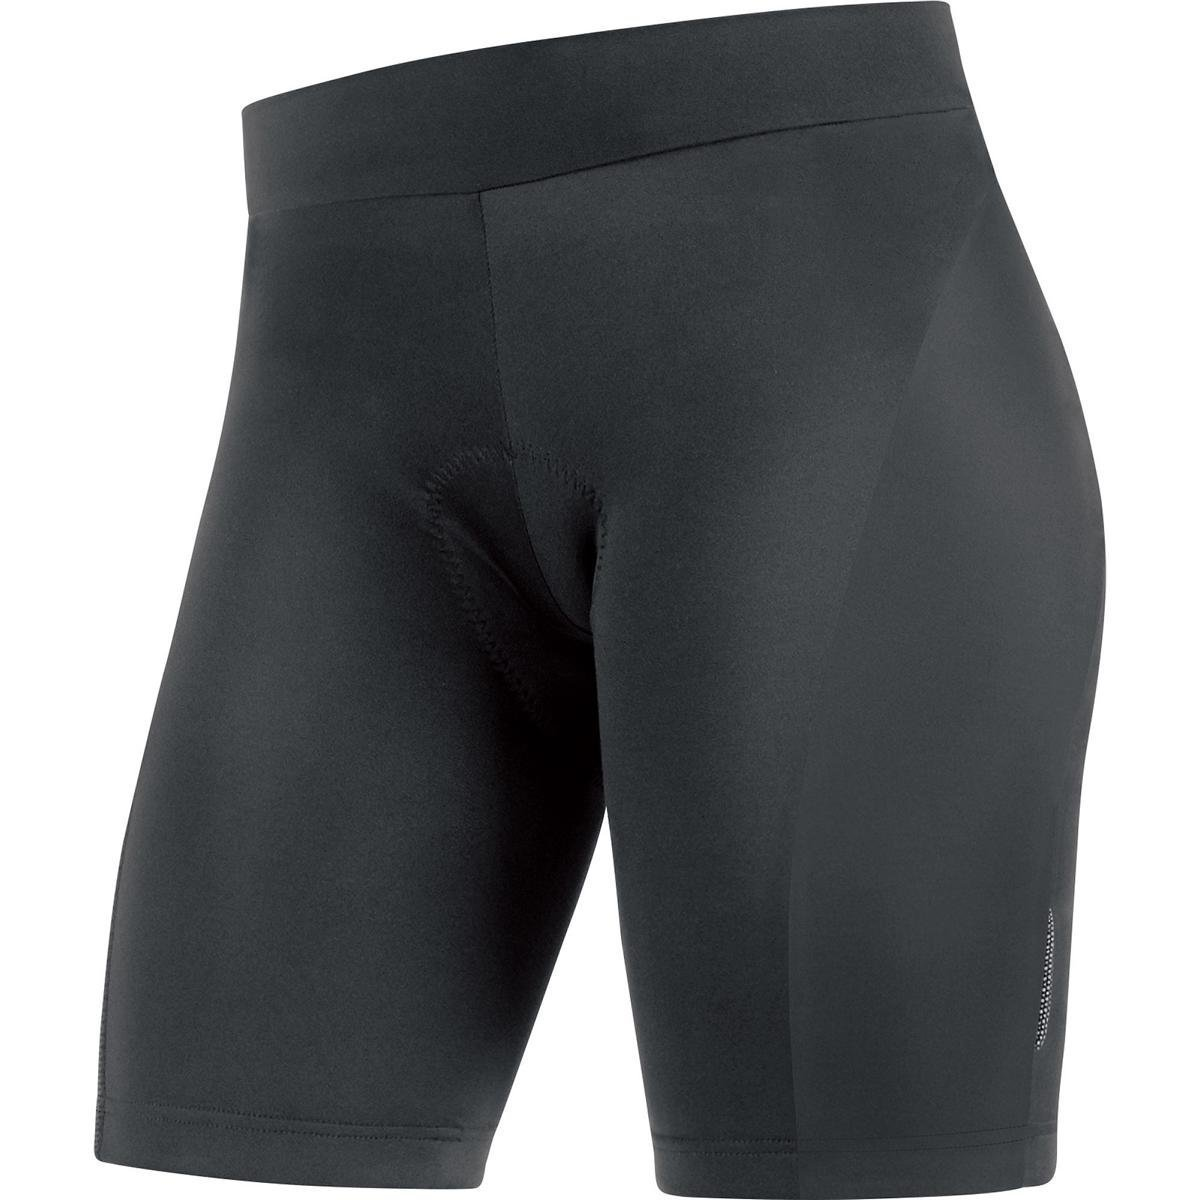 New ProductBIKE WEAR Women8217;s Short Cycling Tights with Seat Padding, GORE Selected Fabrics, ELEMENT LADY Tights short+, TLELES